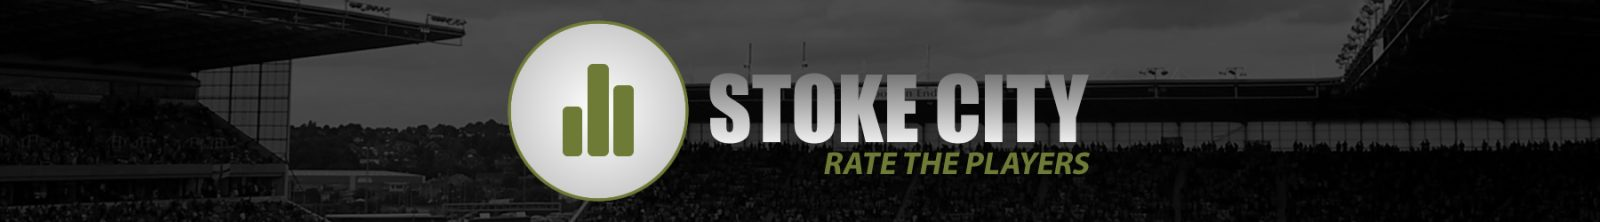 Rate Stoke City